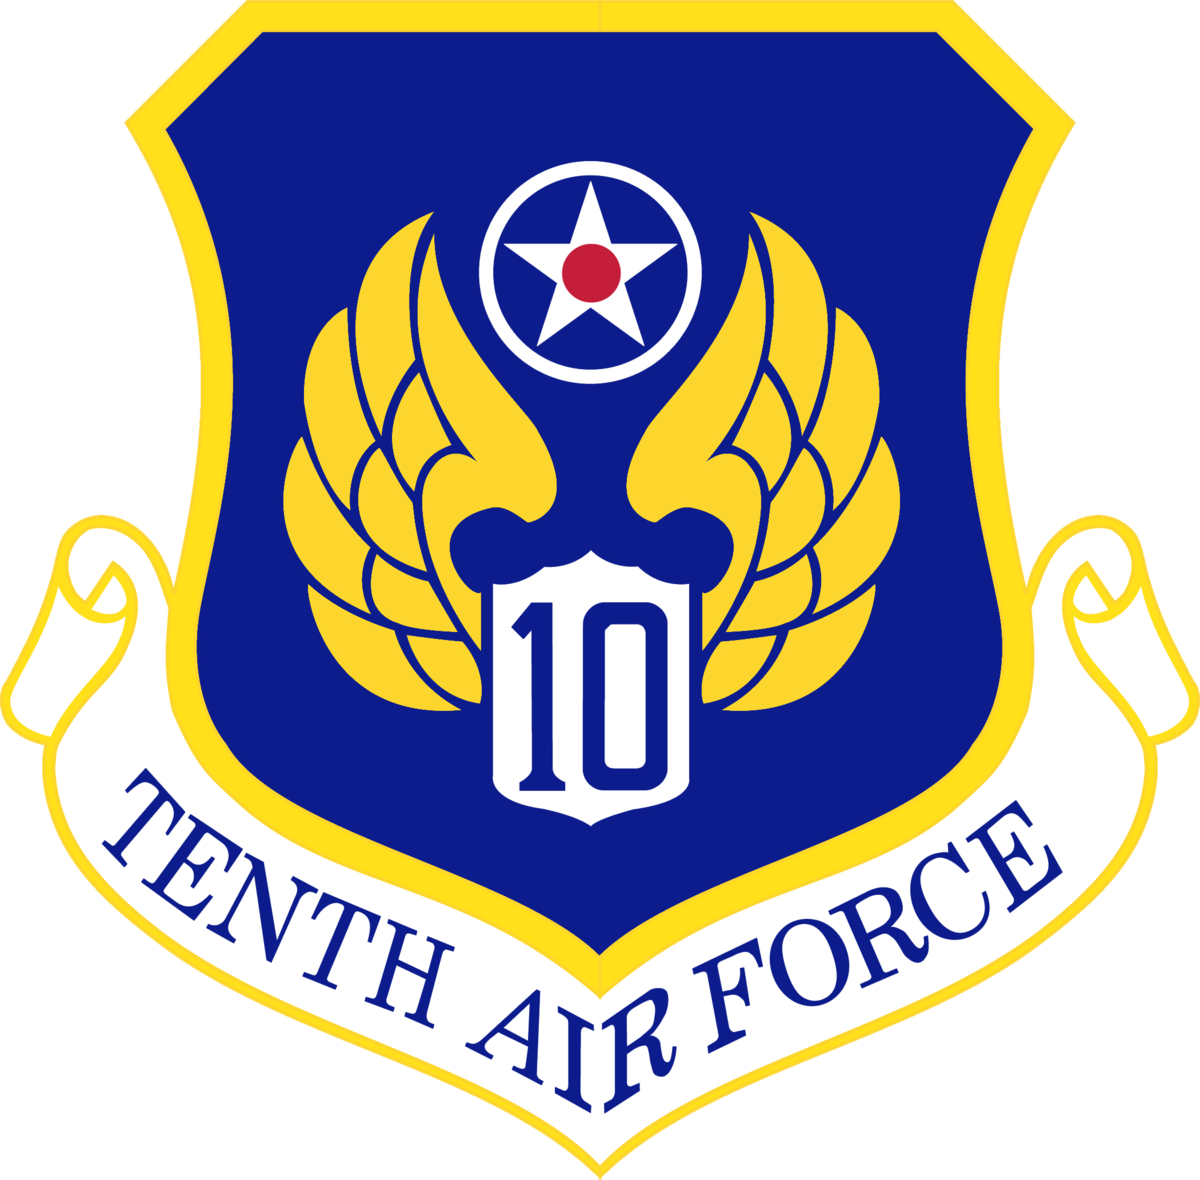 Tenth Air Force Wikipedia Air Force Air Force Patches Force